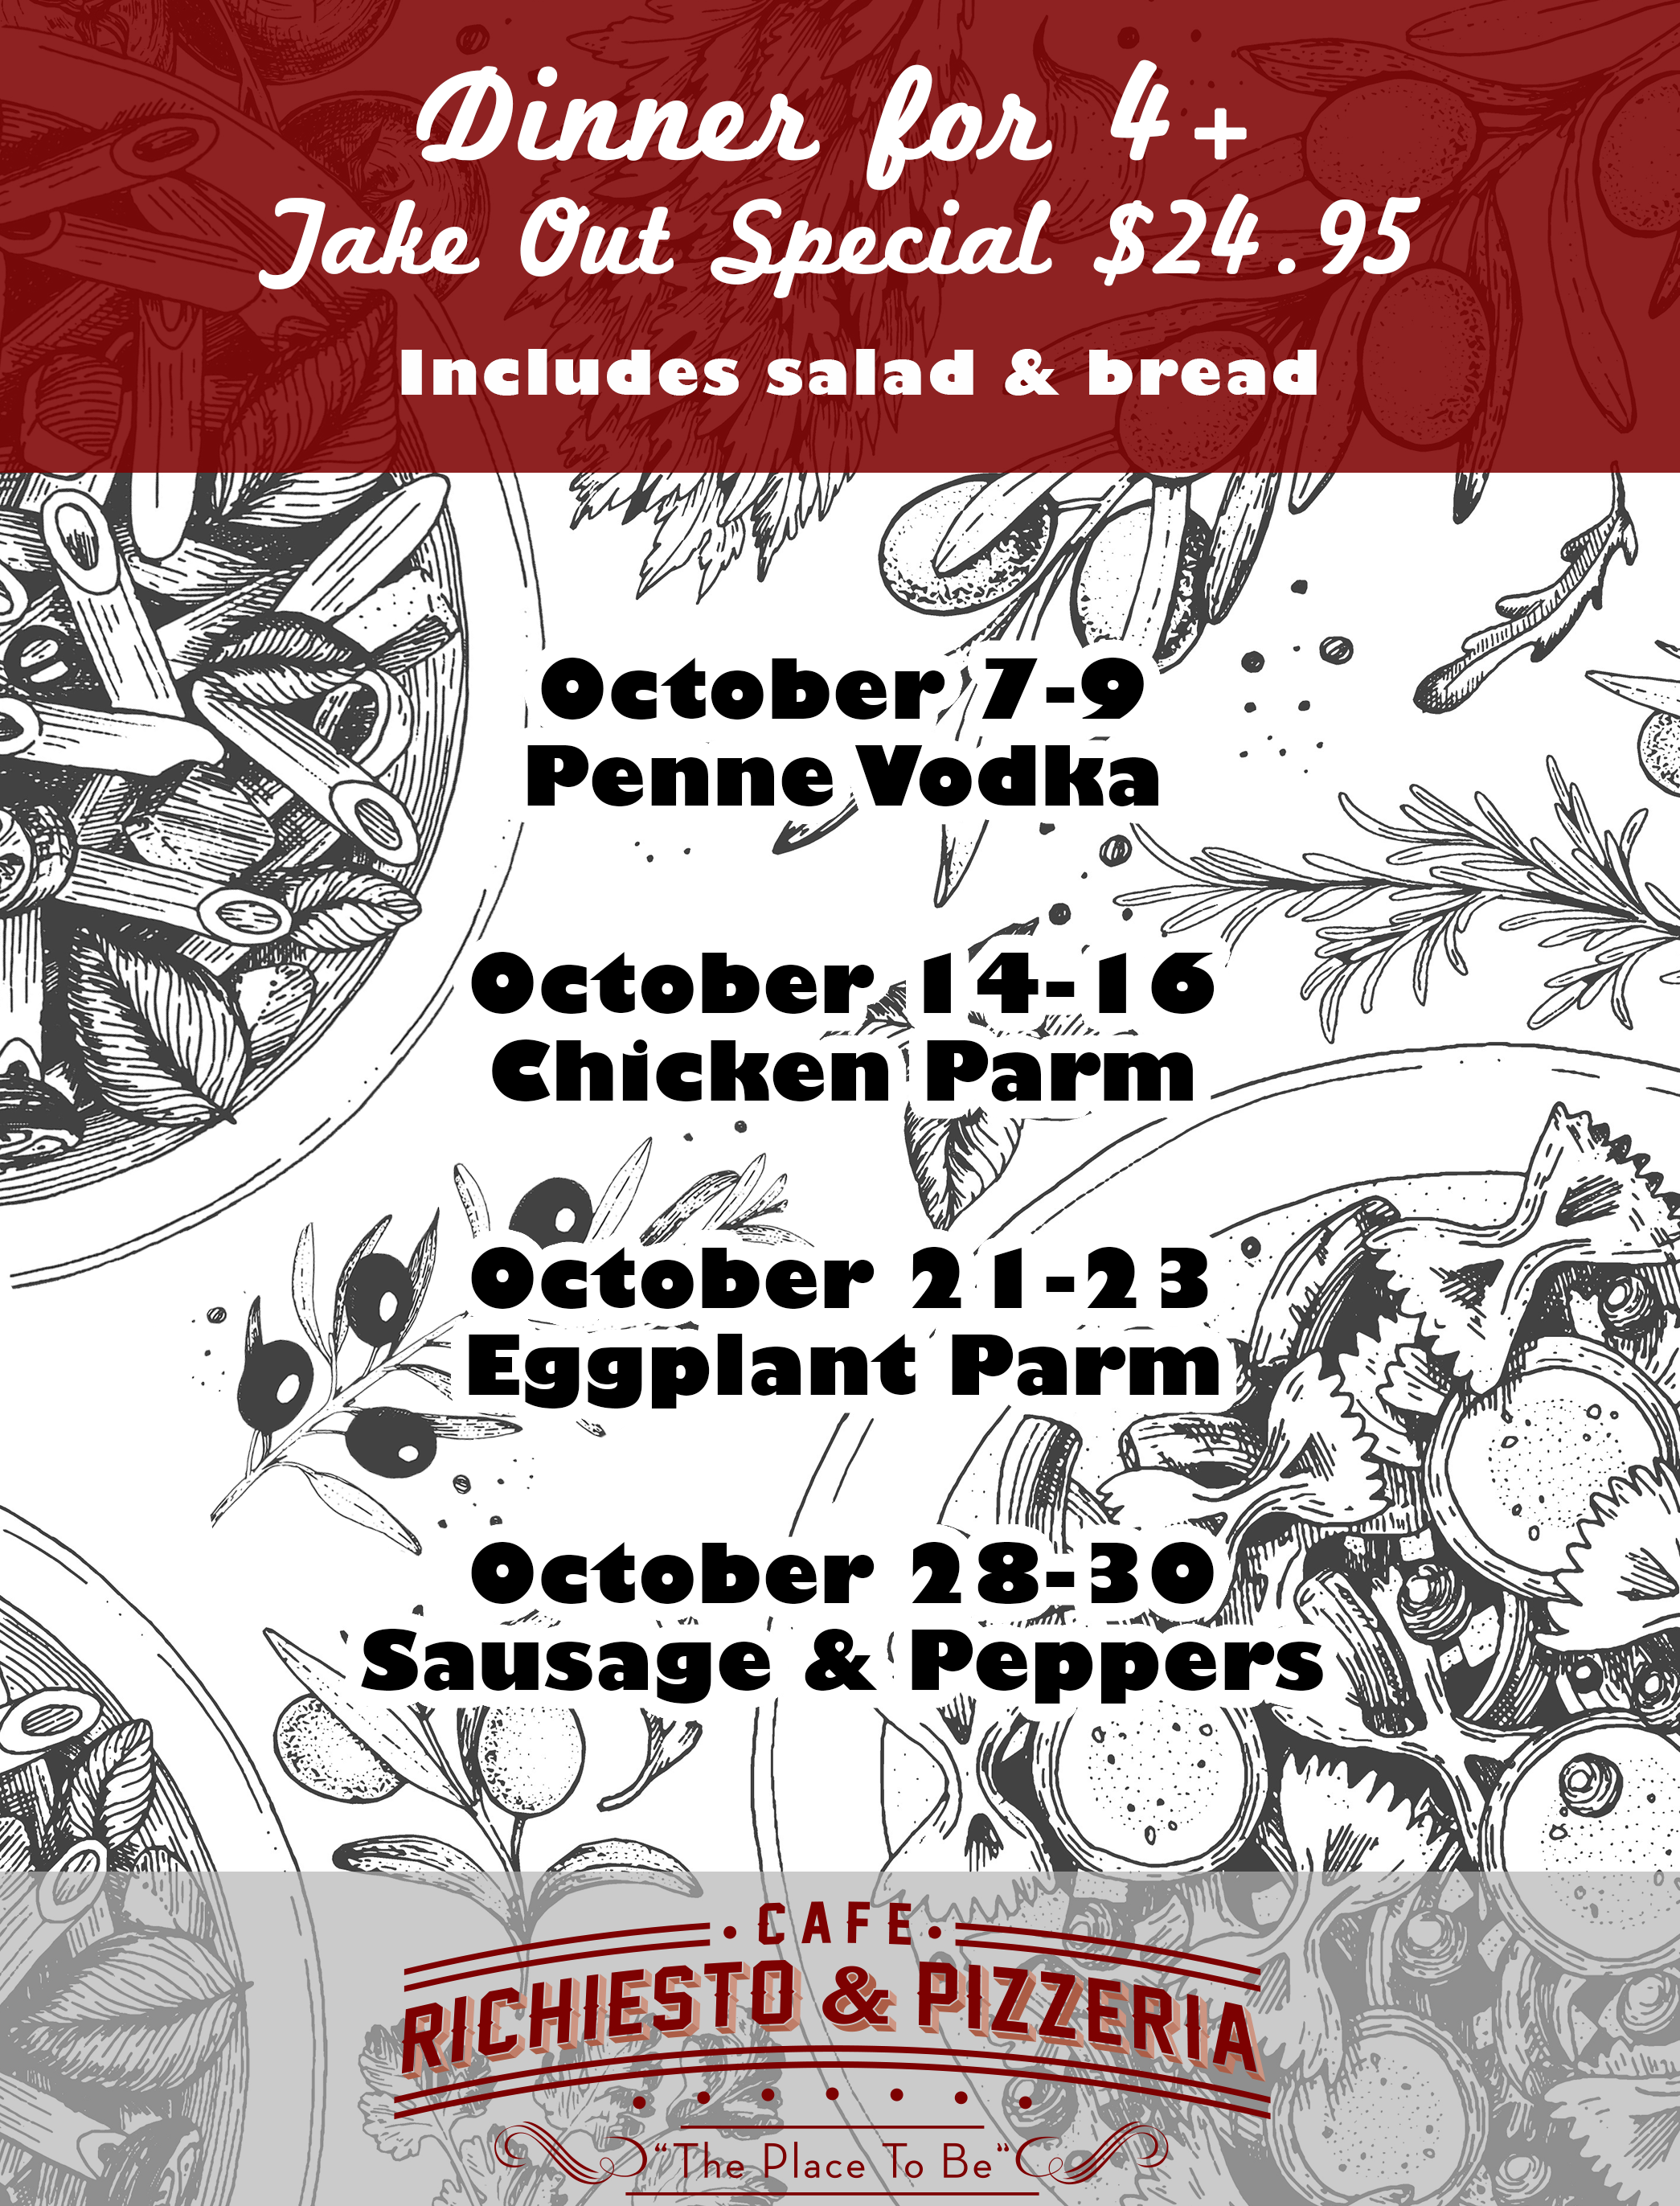 Dinner for 4+ Take Out Special $24.95 October 7-9 Penne Vodka  October 14-16 Chicken Parm  October 21-23 Eggplant Parm  October 28-30 Sausage & Peppers